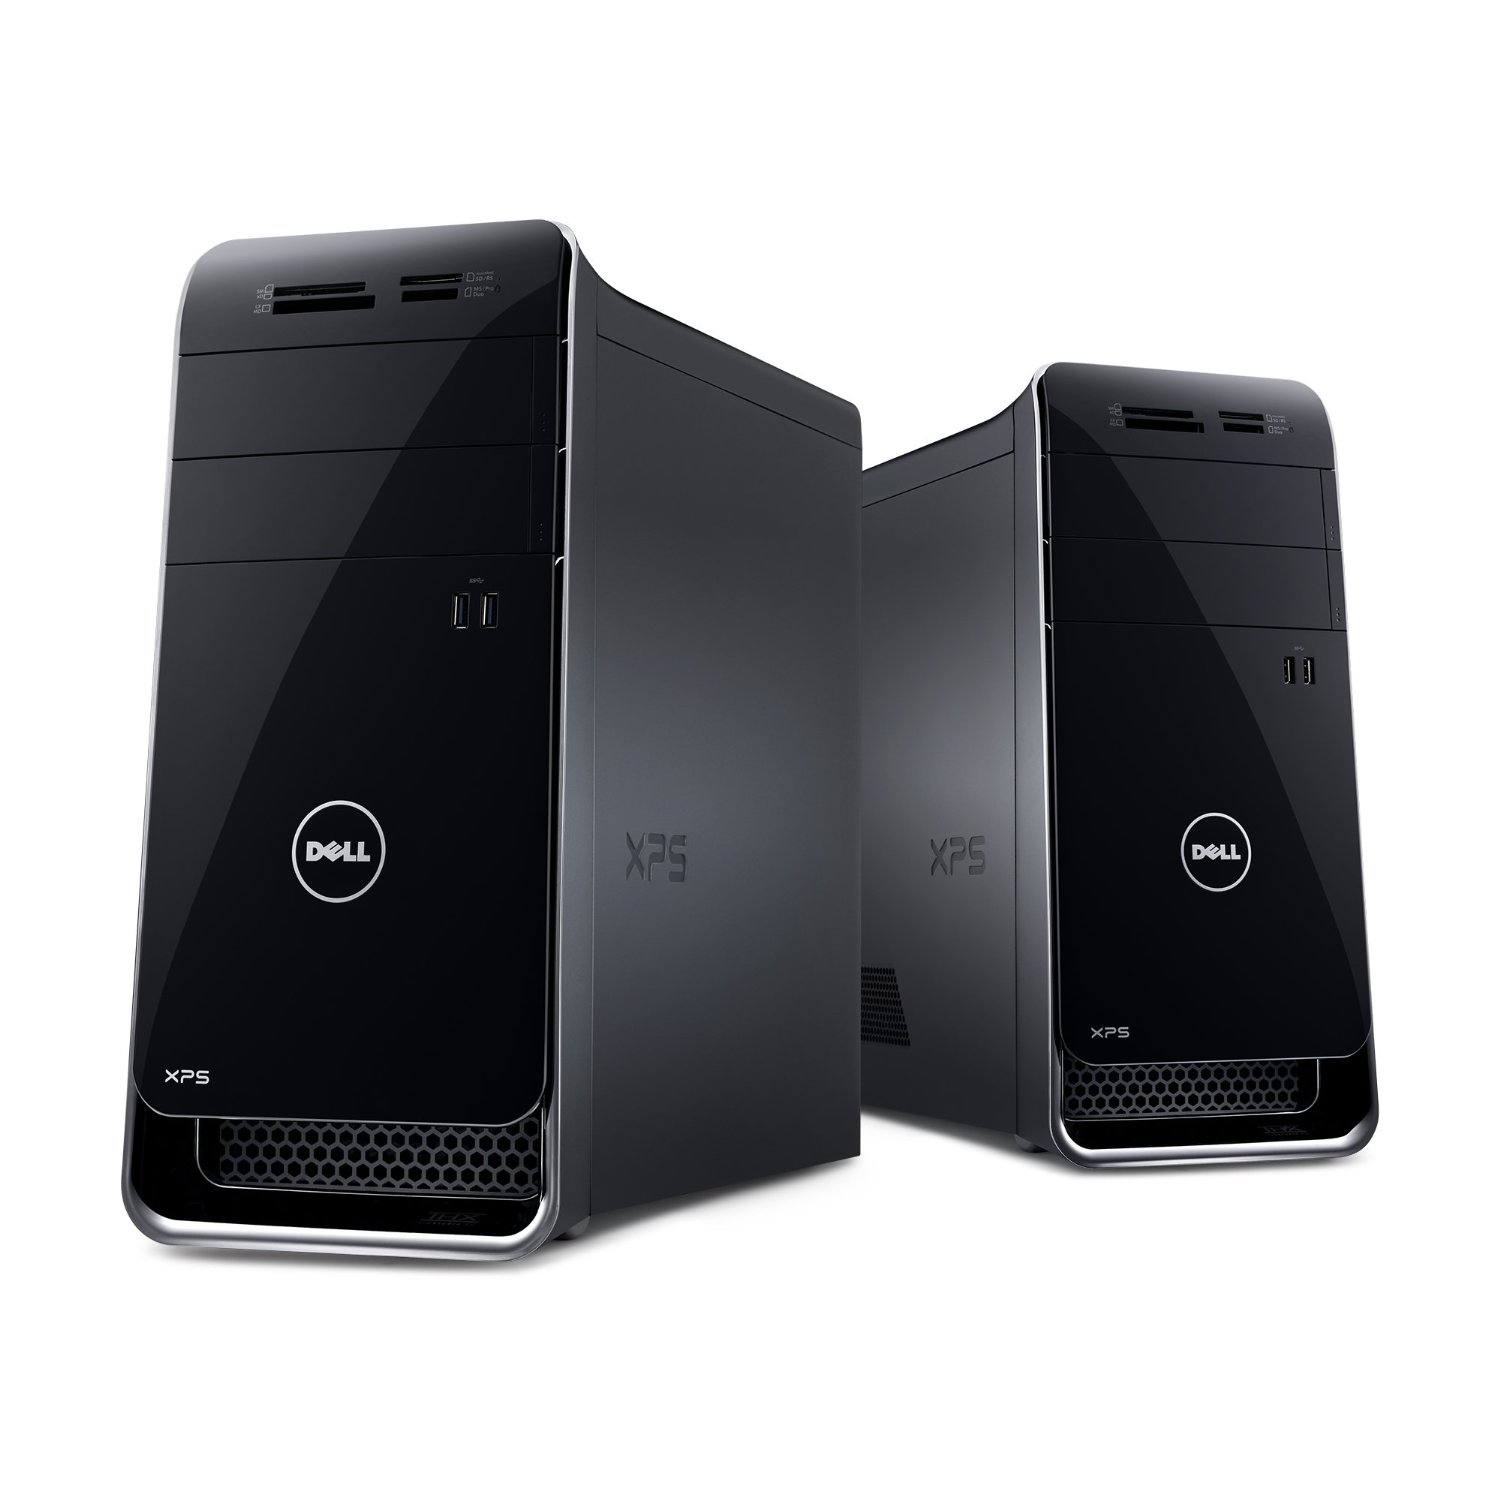 Dell Xps 8700 Desktop Pc Spec Service on dell xps 8700 manual